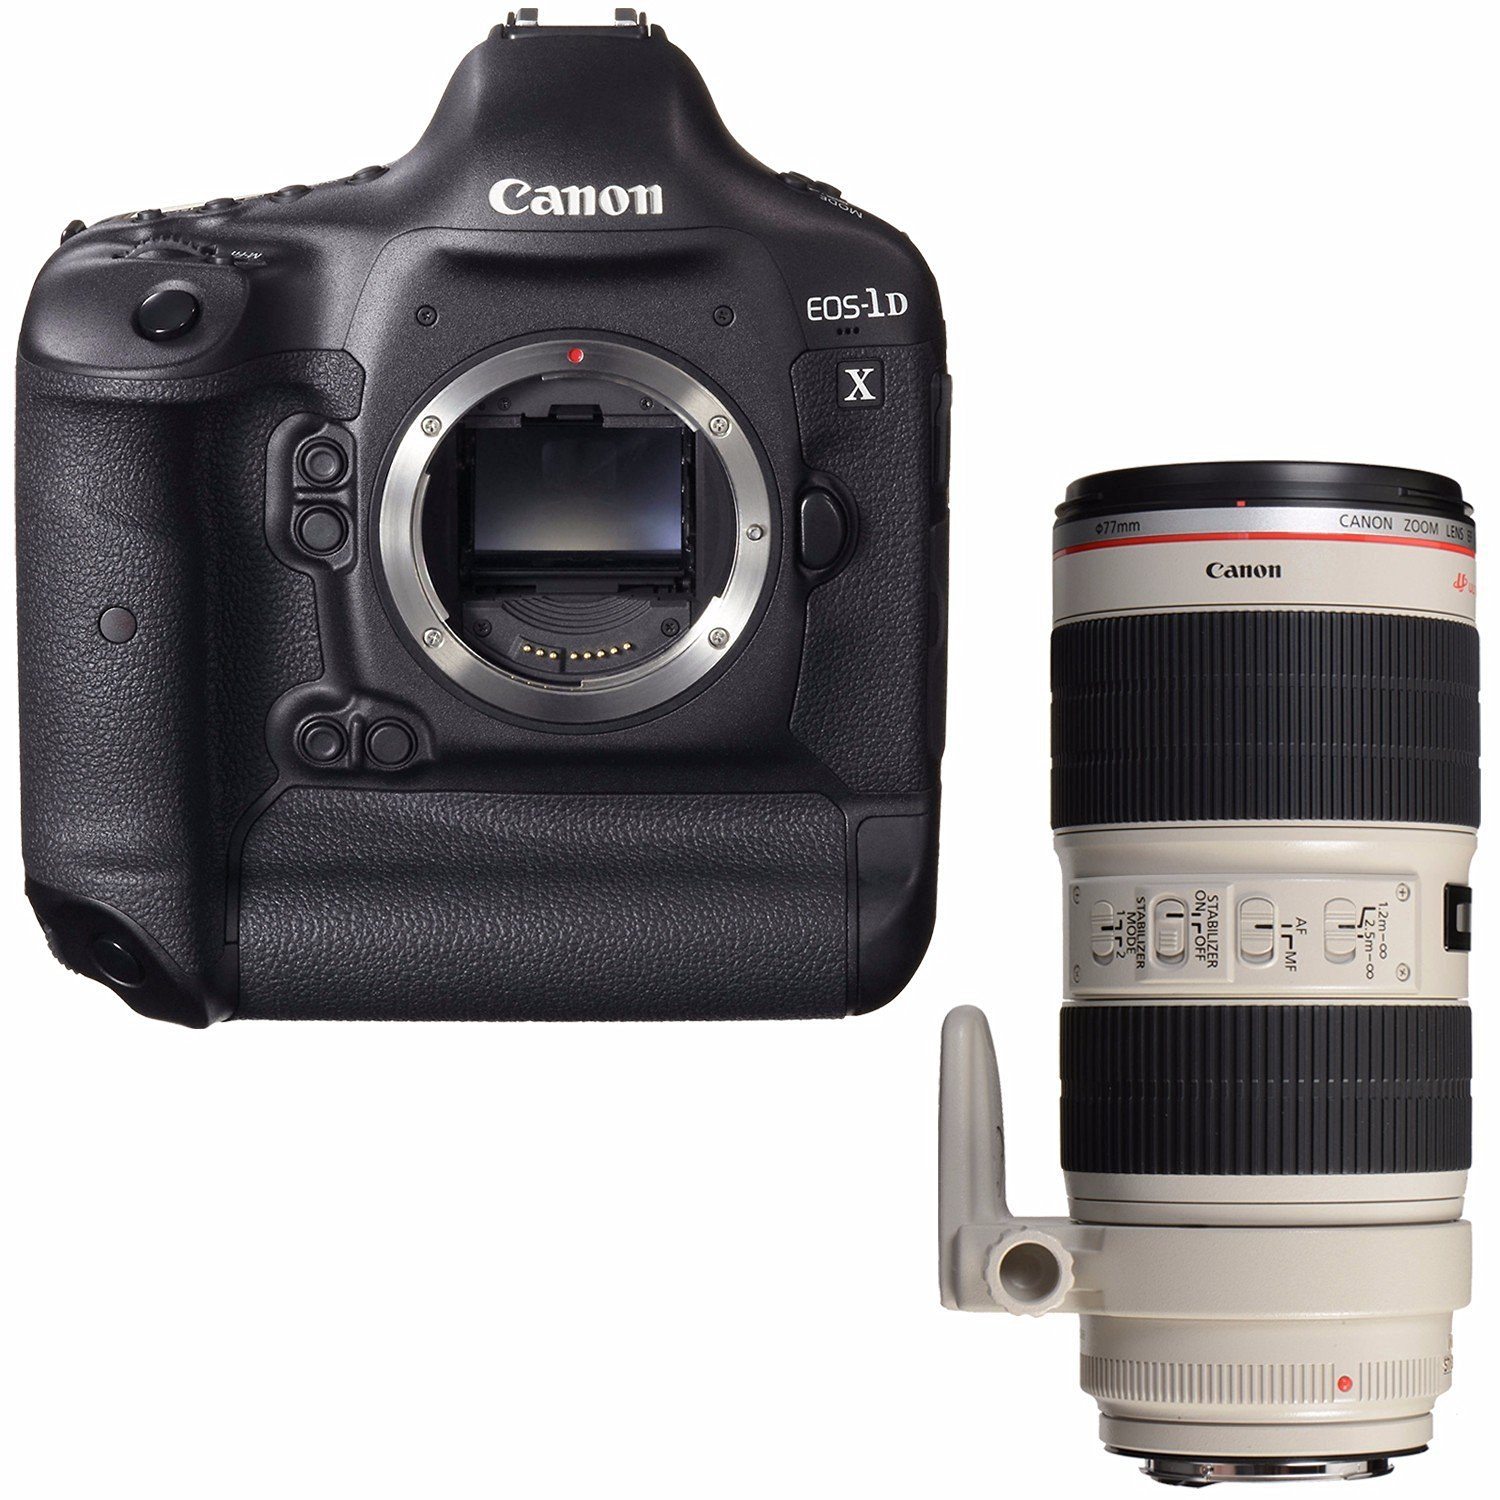 Canon EOS-1D X DSLR Camera (Body Only) + Canon EF 70-200mm f/2.8L IS II USM Lens Bundle